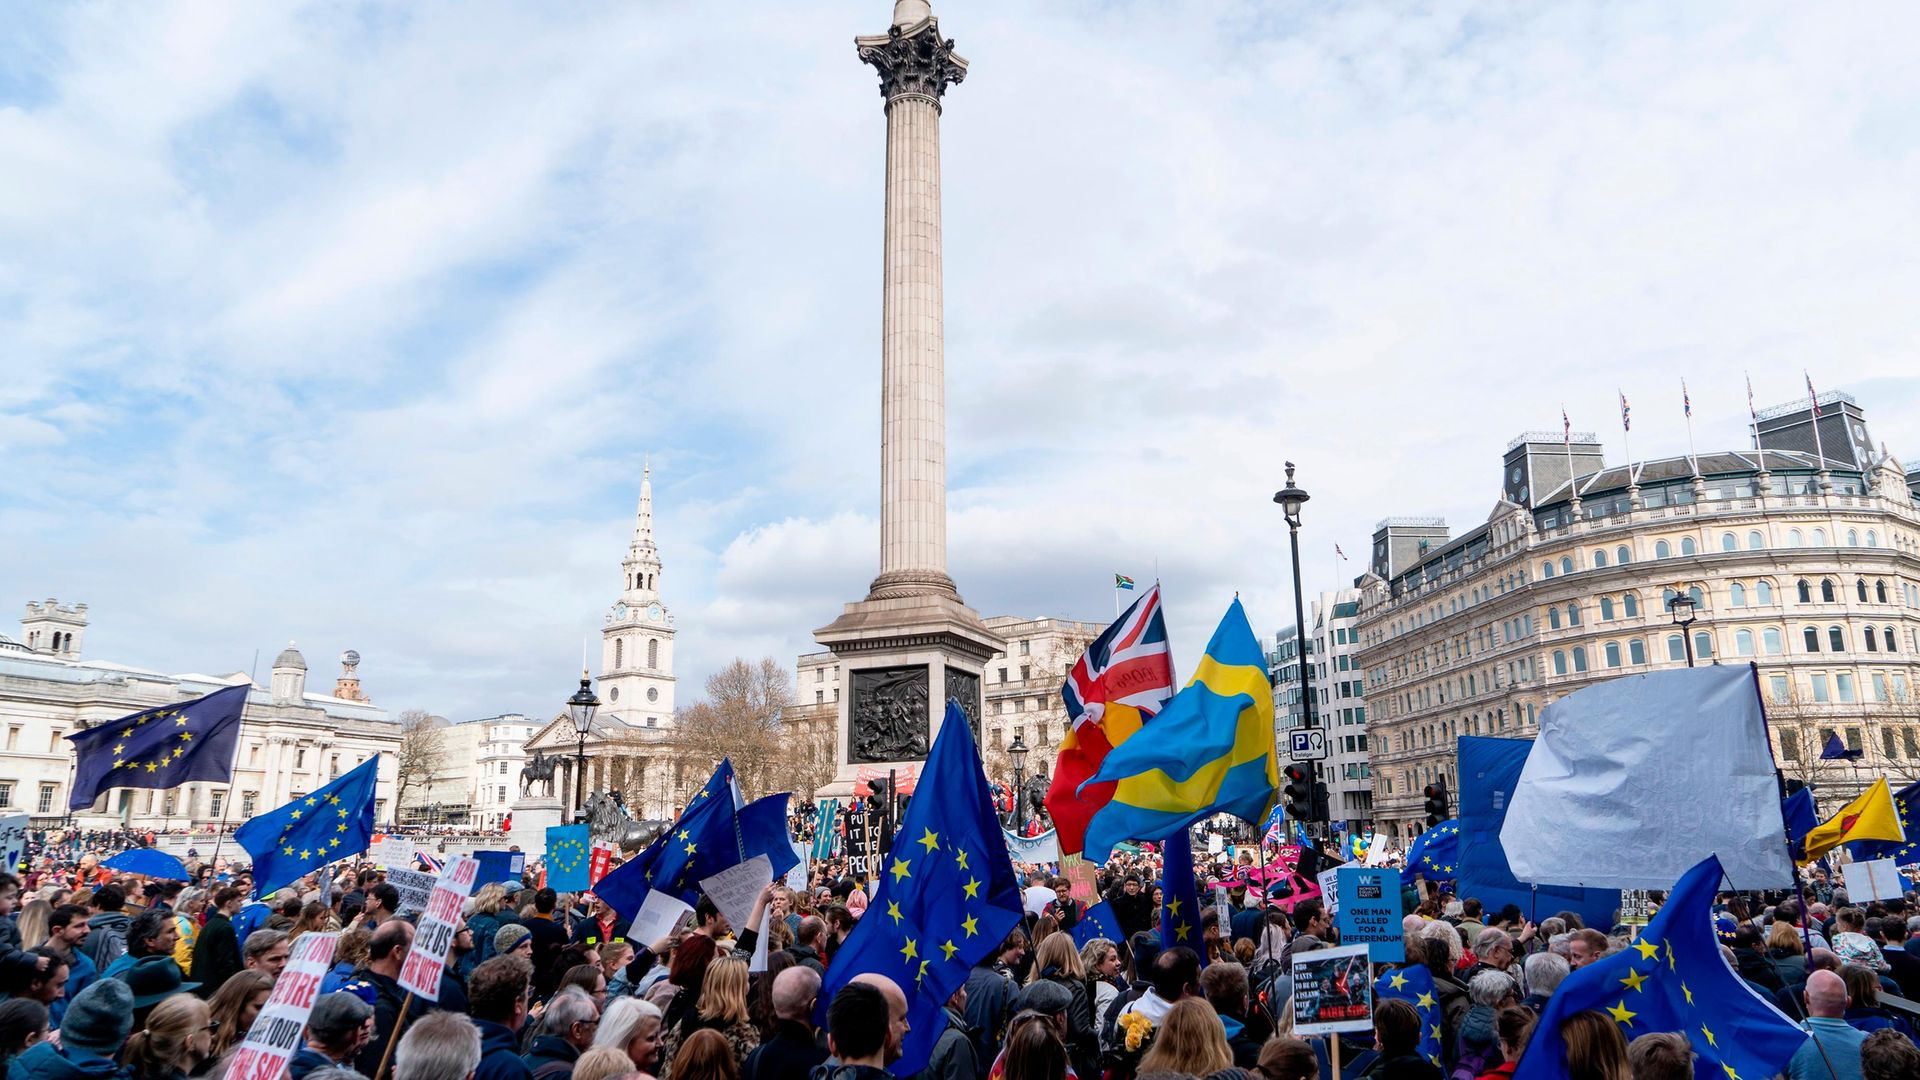 People hold up placards and European Union flags as they pass Trafalgar Square on a march and rally - Credit: NIKLAS HALLE'N/AFP via Getty Images